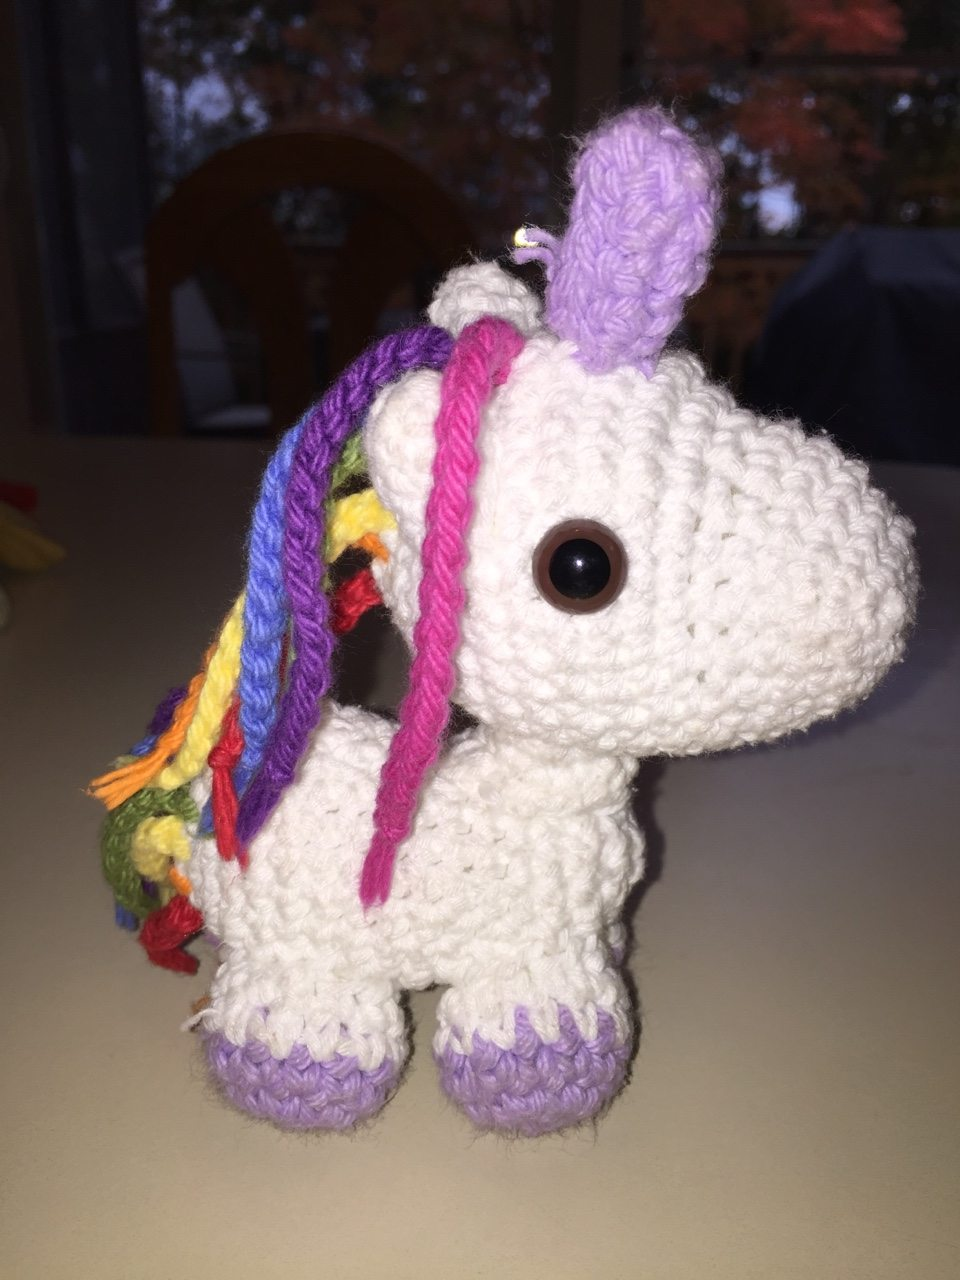 white amigurumi unicorn with rainbow hair and a lavender horn